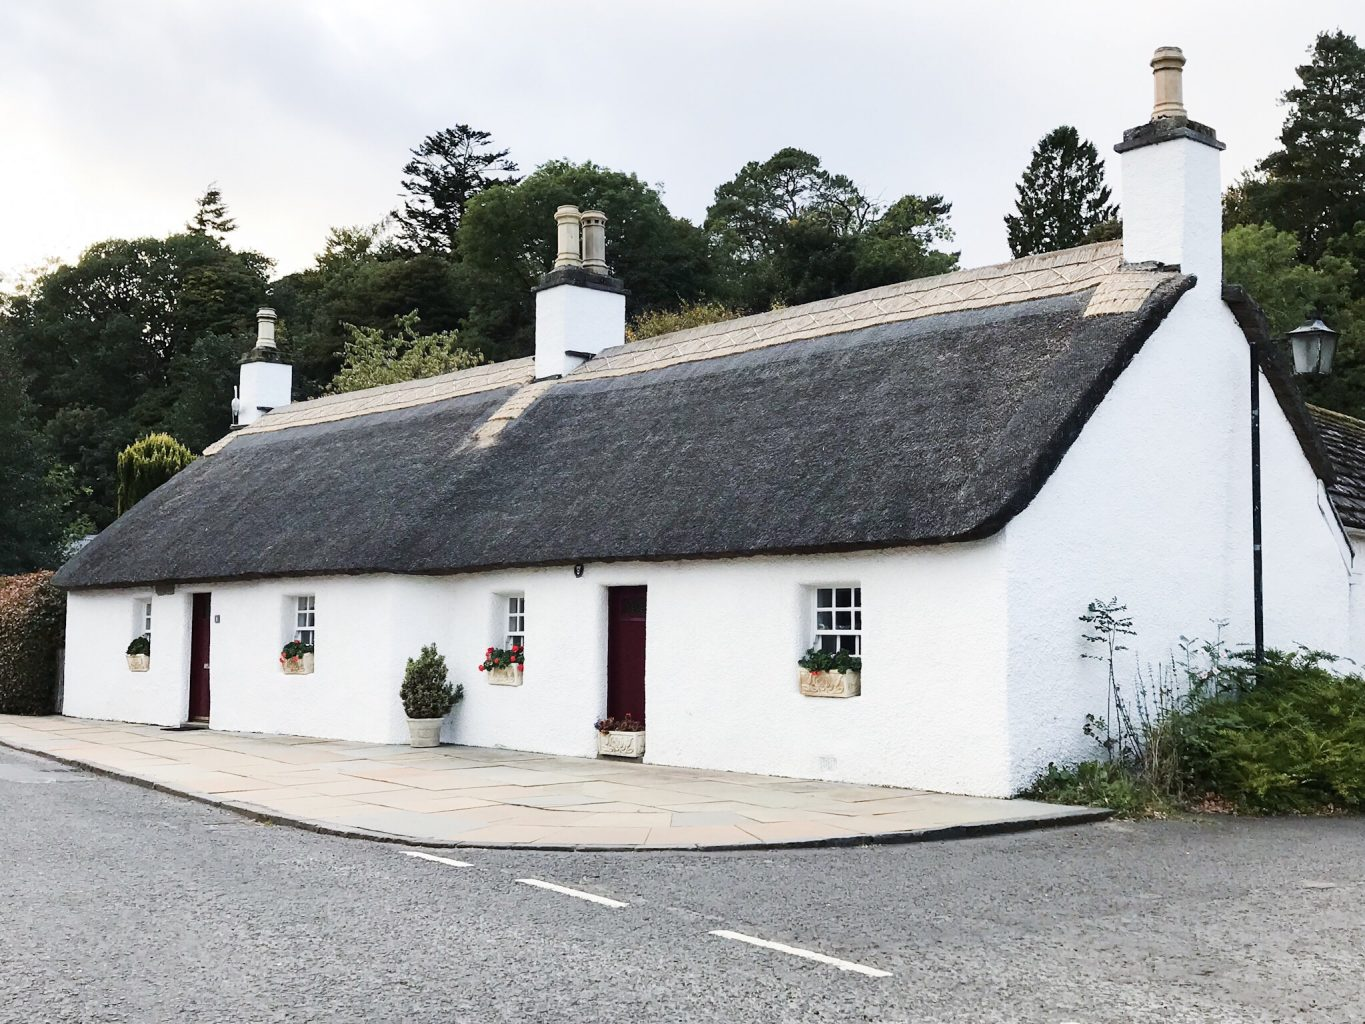 White Cottages with Thatched Roof in Glamis